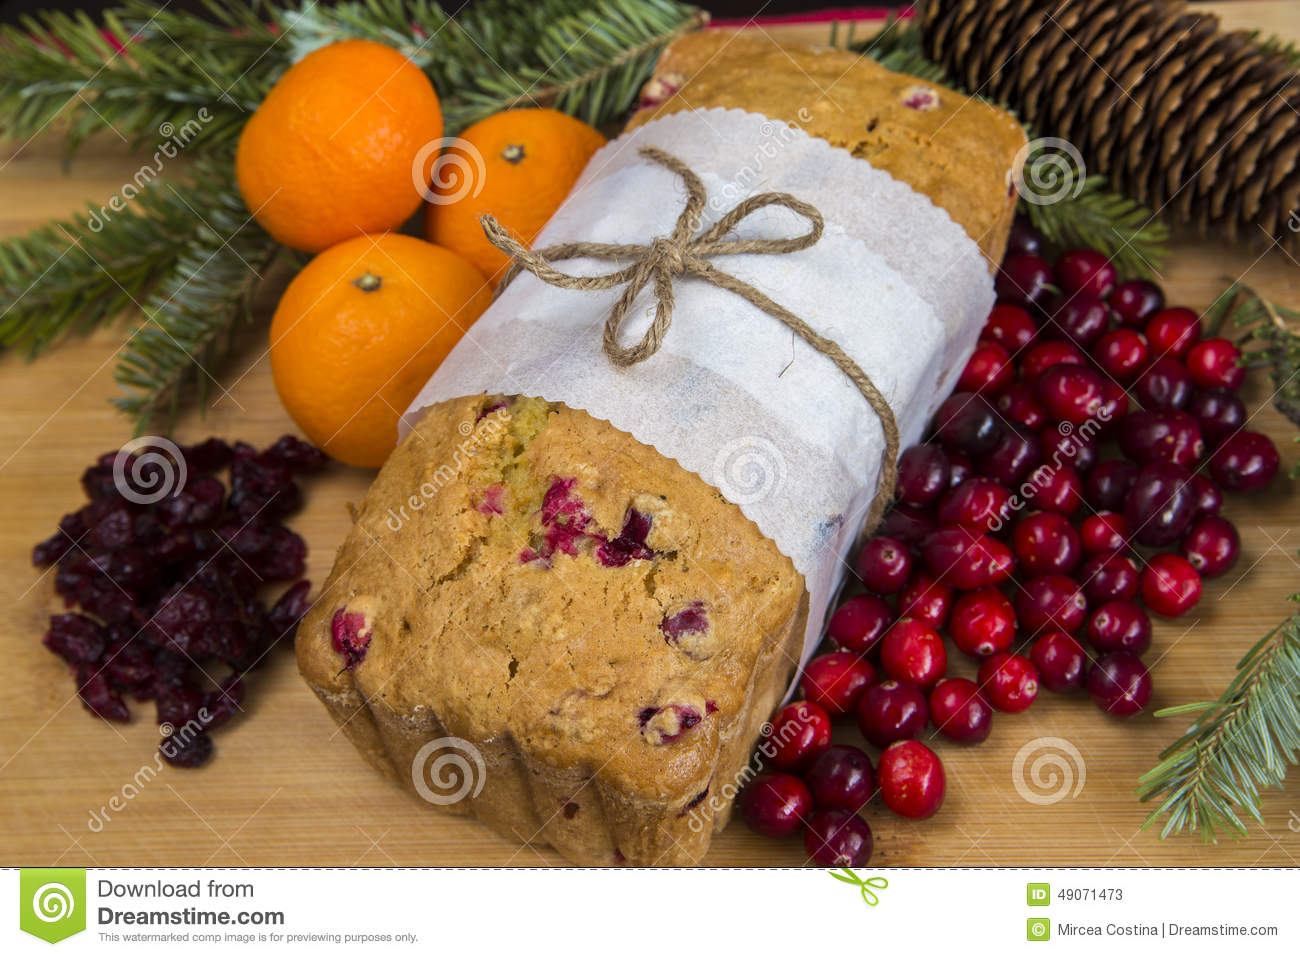 Christmas Loaf Cake Decoration : Orange Cranberry Loaf Cake Stock Photo - Image: 49071473